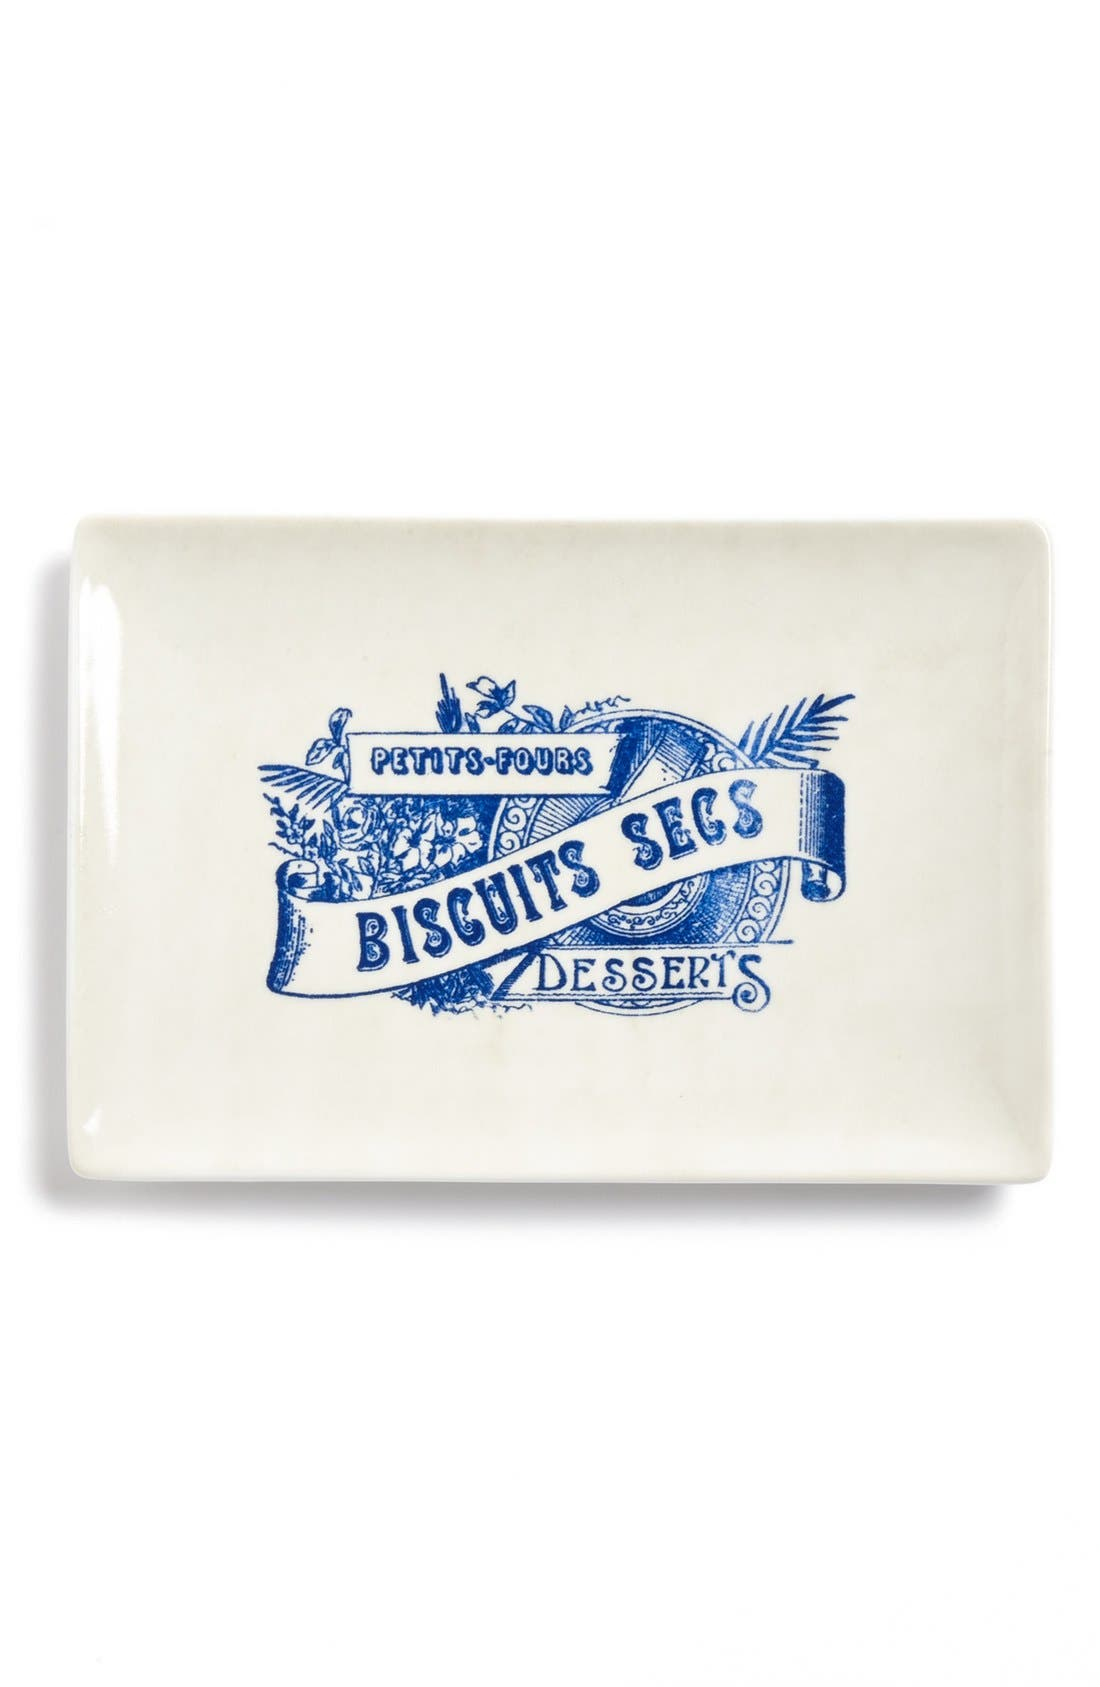 Alternate Image 1 Selected - 'Biscuits' Porcelain Tray